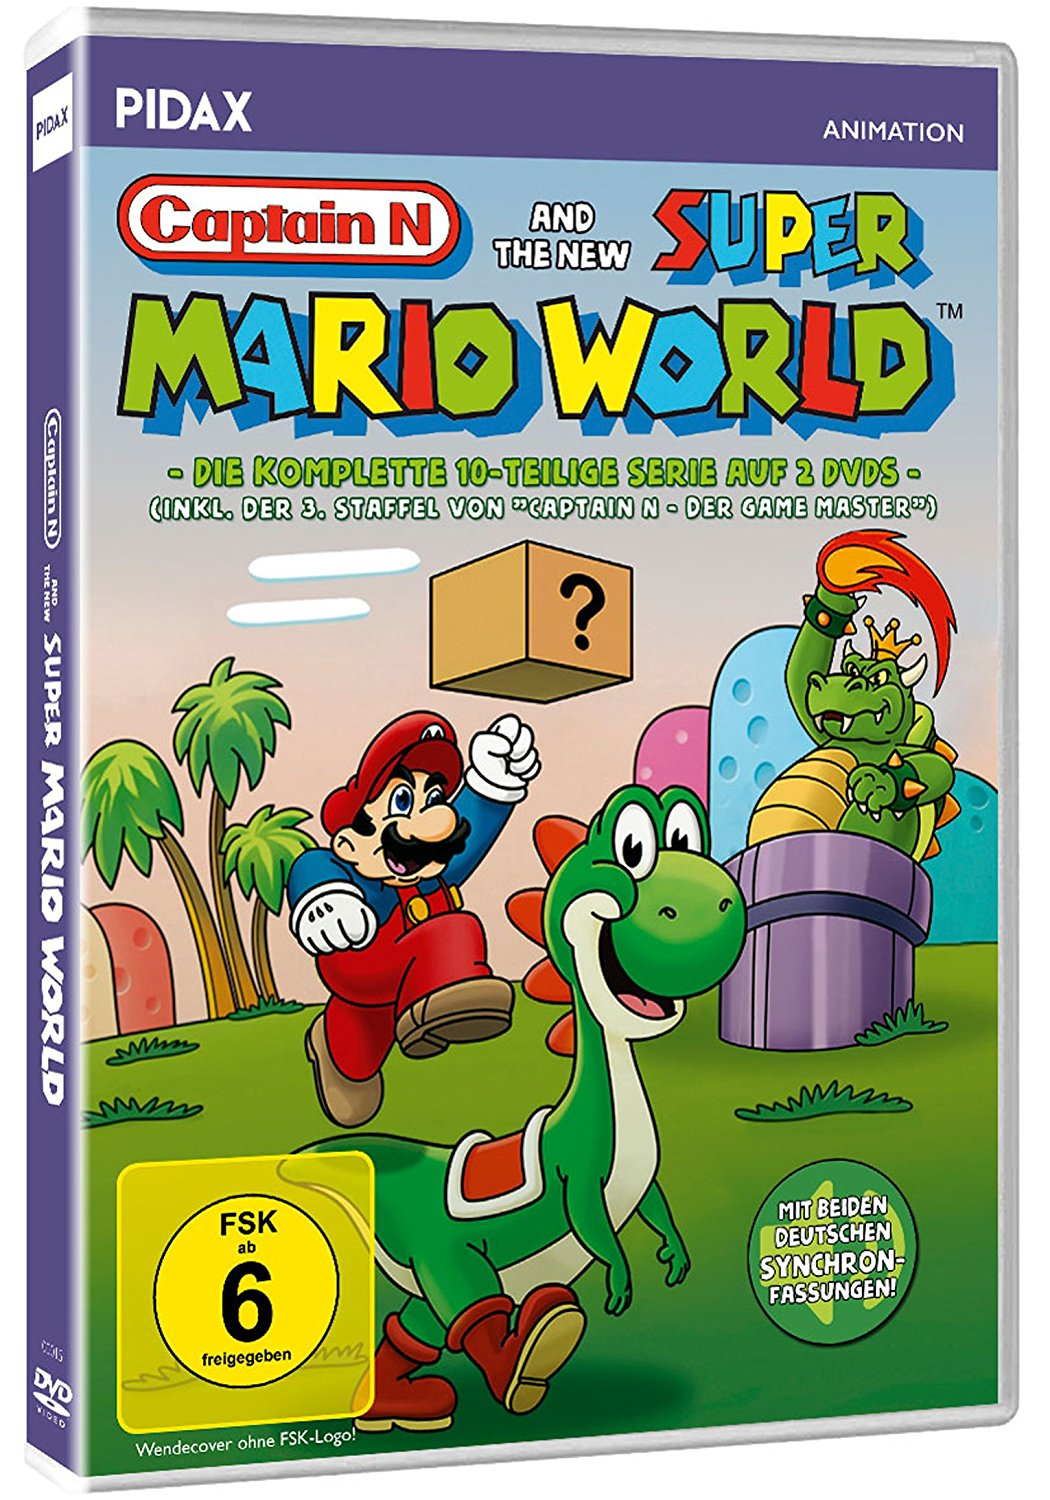 Captain N and the new Super Mario World / Die komplette 10-teilige Serie inkl. Staffel 3 von CAPTAIN N.